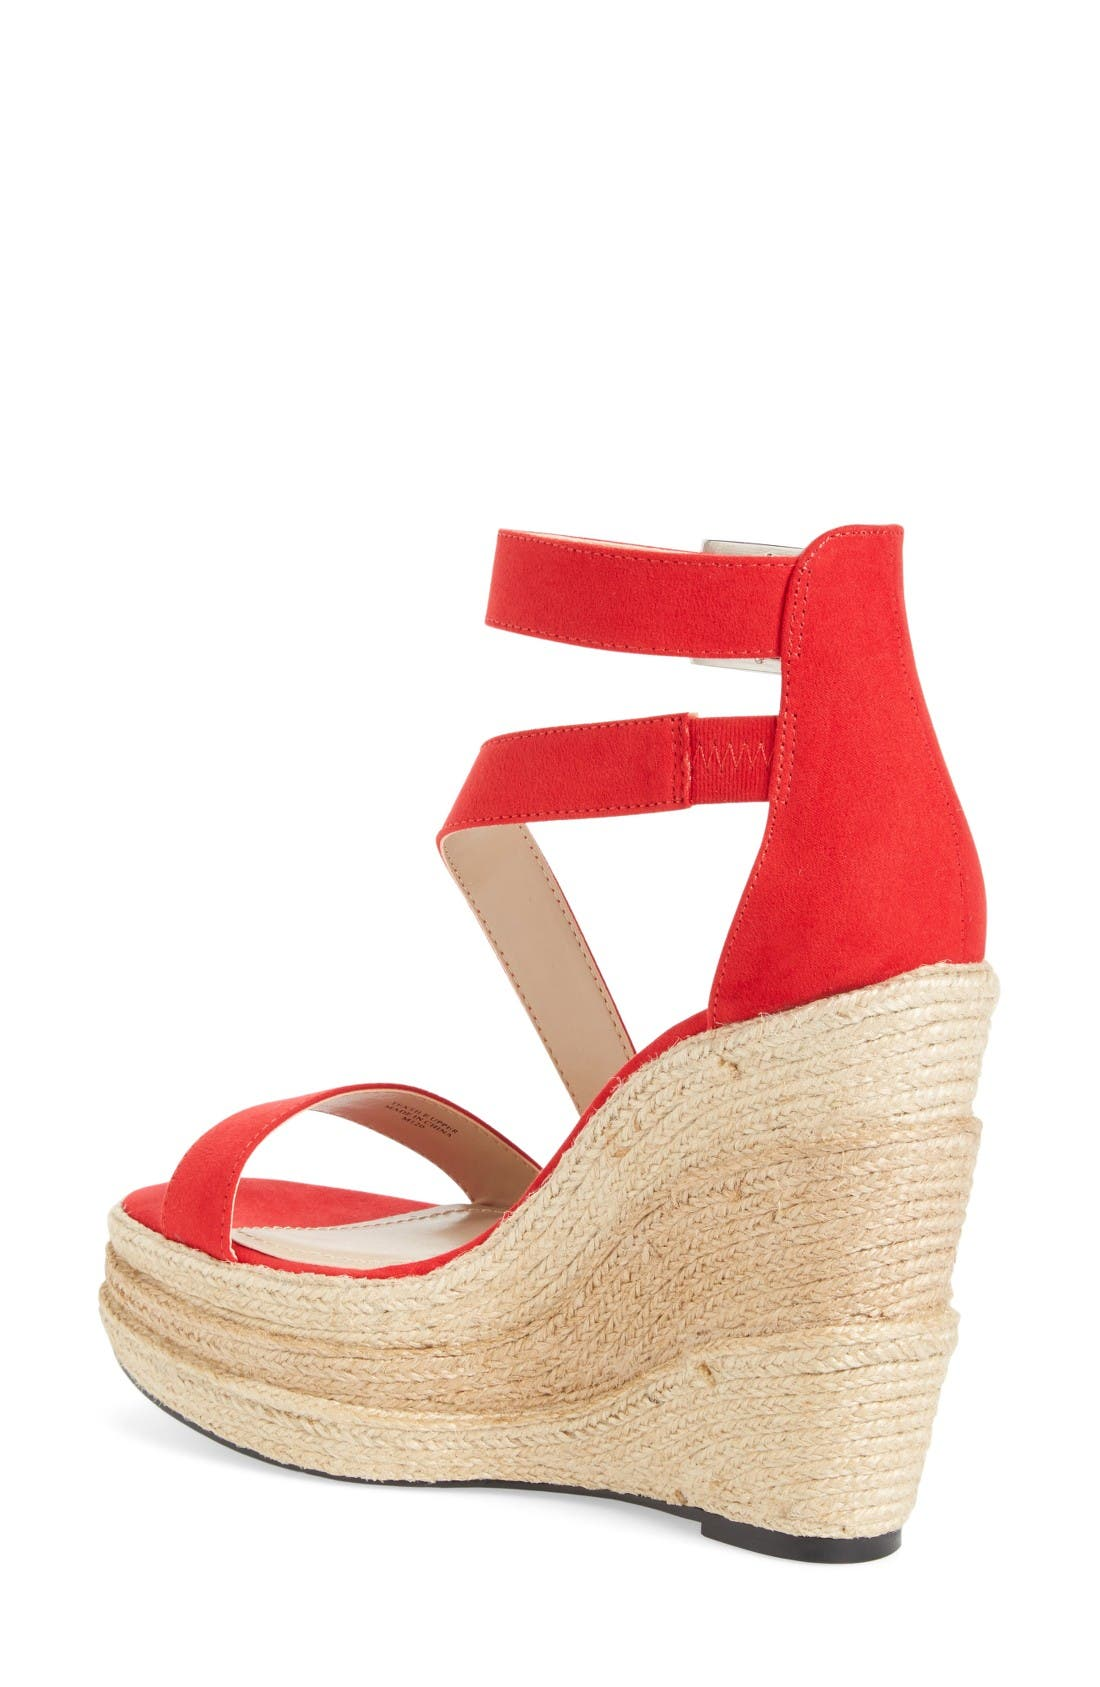 Thunder Wedge Sandal,                             Alternate thumbnail 2, color,                             Red Micro Suede